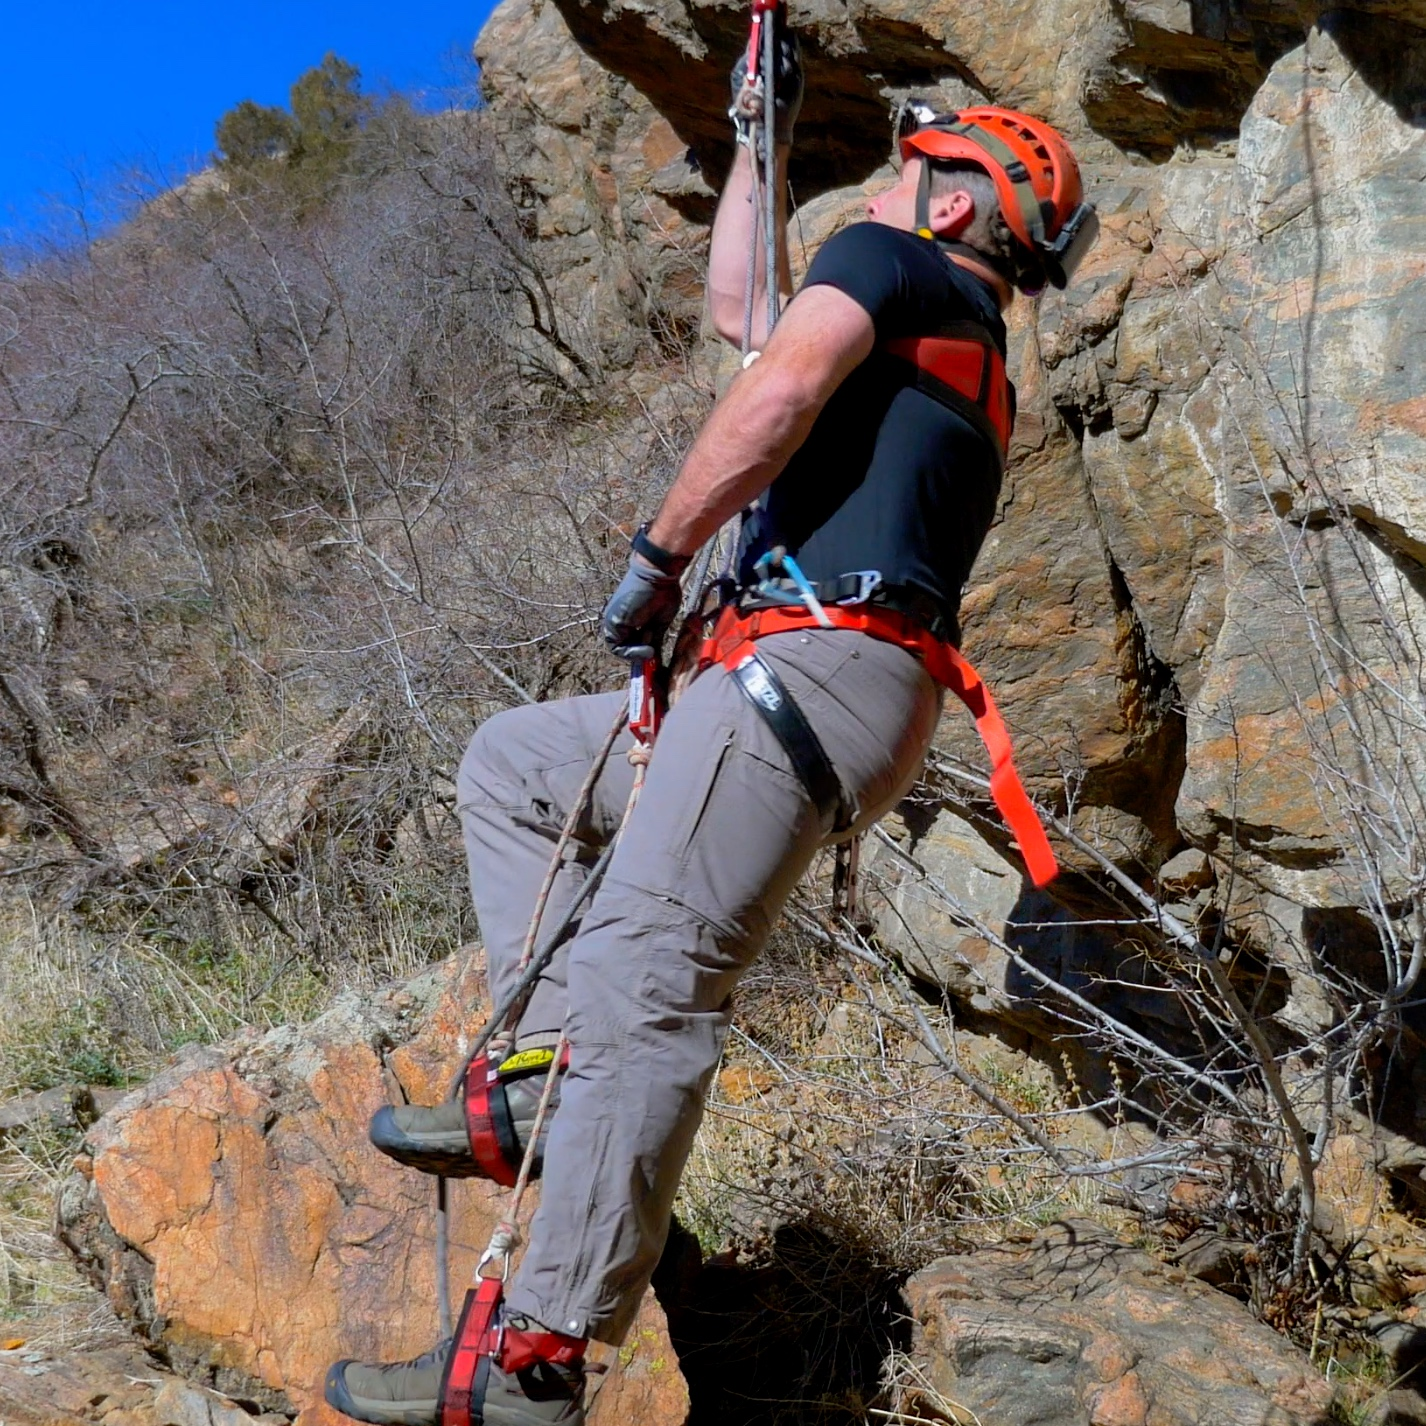 Mitchell system - The Mitchell system is a ropewalker system that is quicker to get on or off the rope, and faster at mid-rope maneuvers than a traditional Ropewalker system. It is also very fast and efficient at down-climbing.